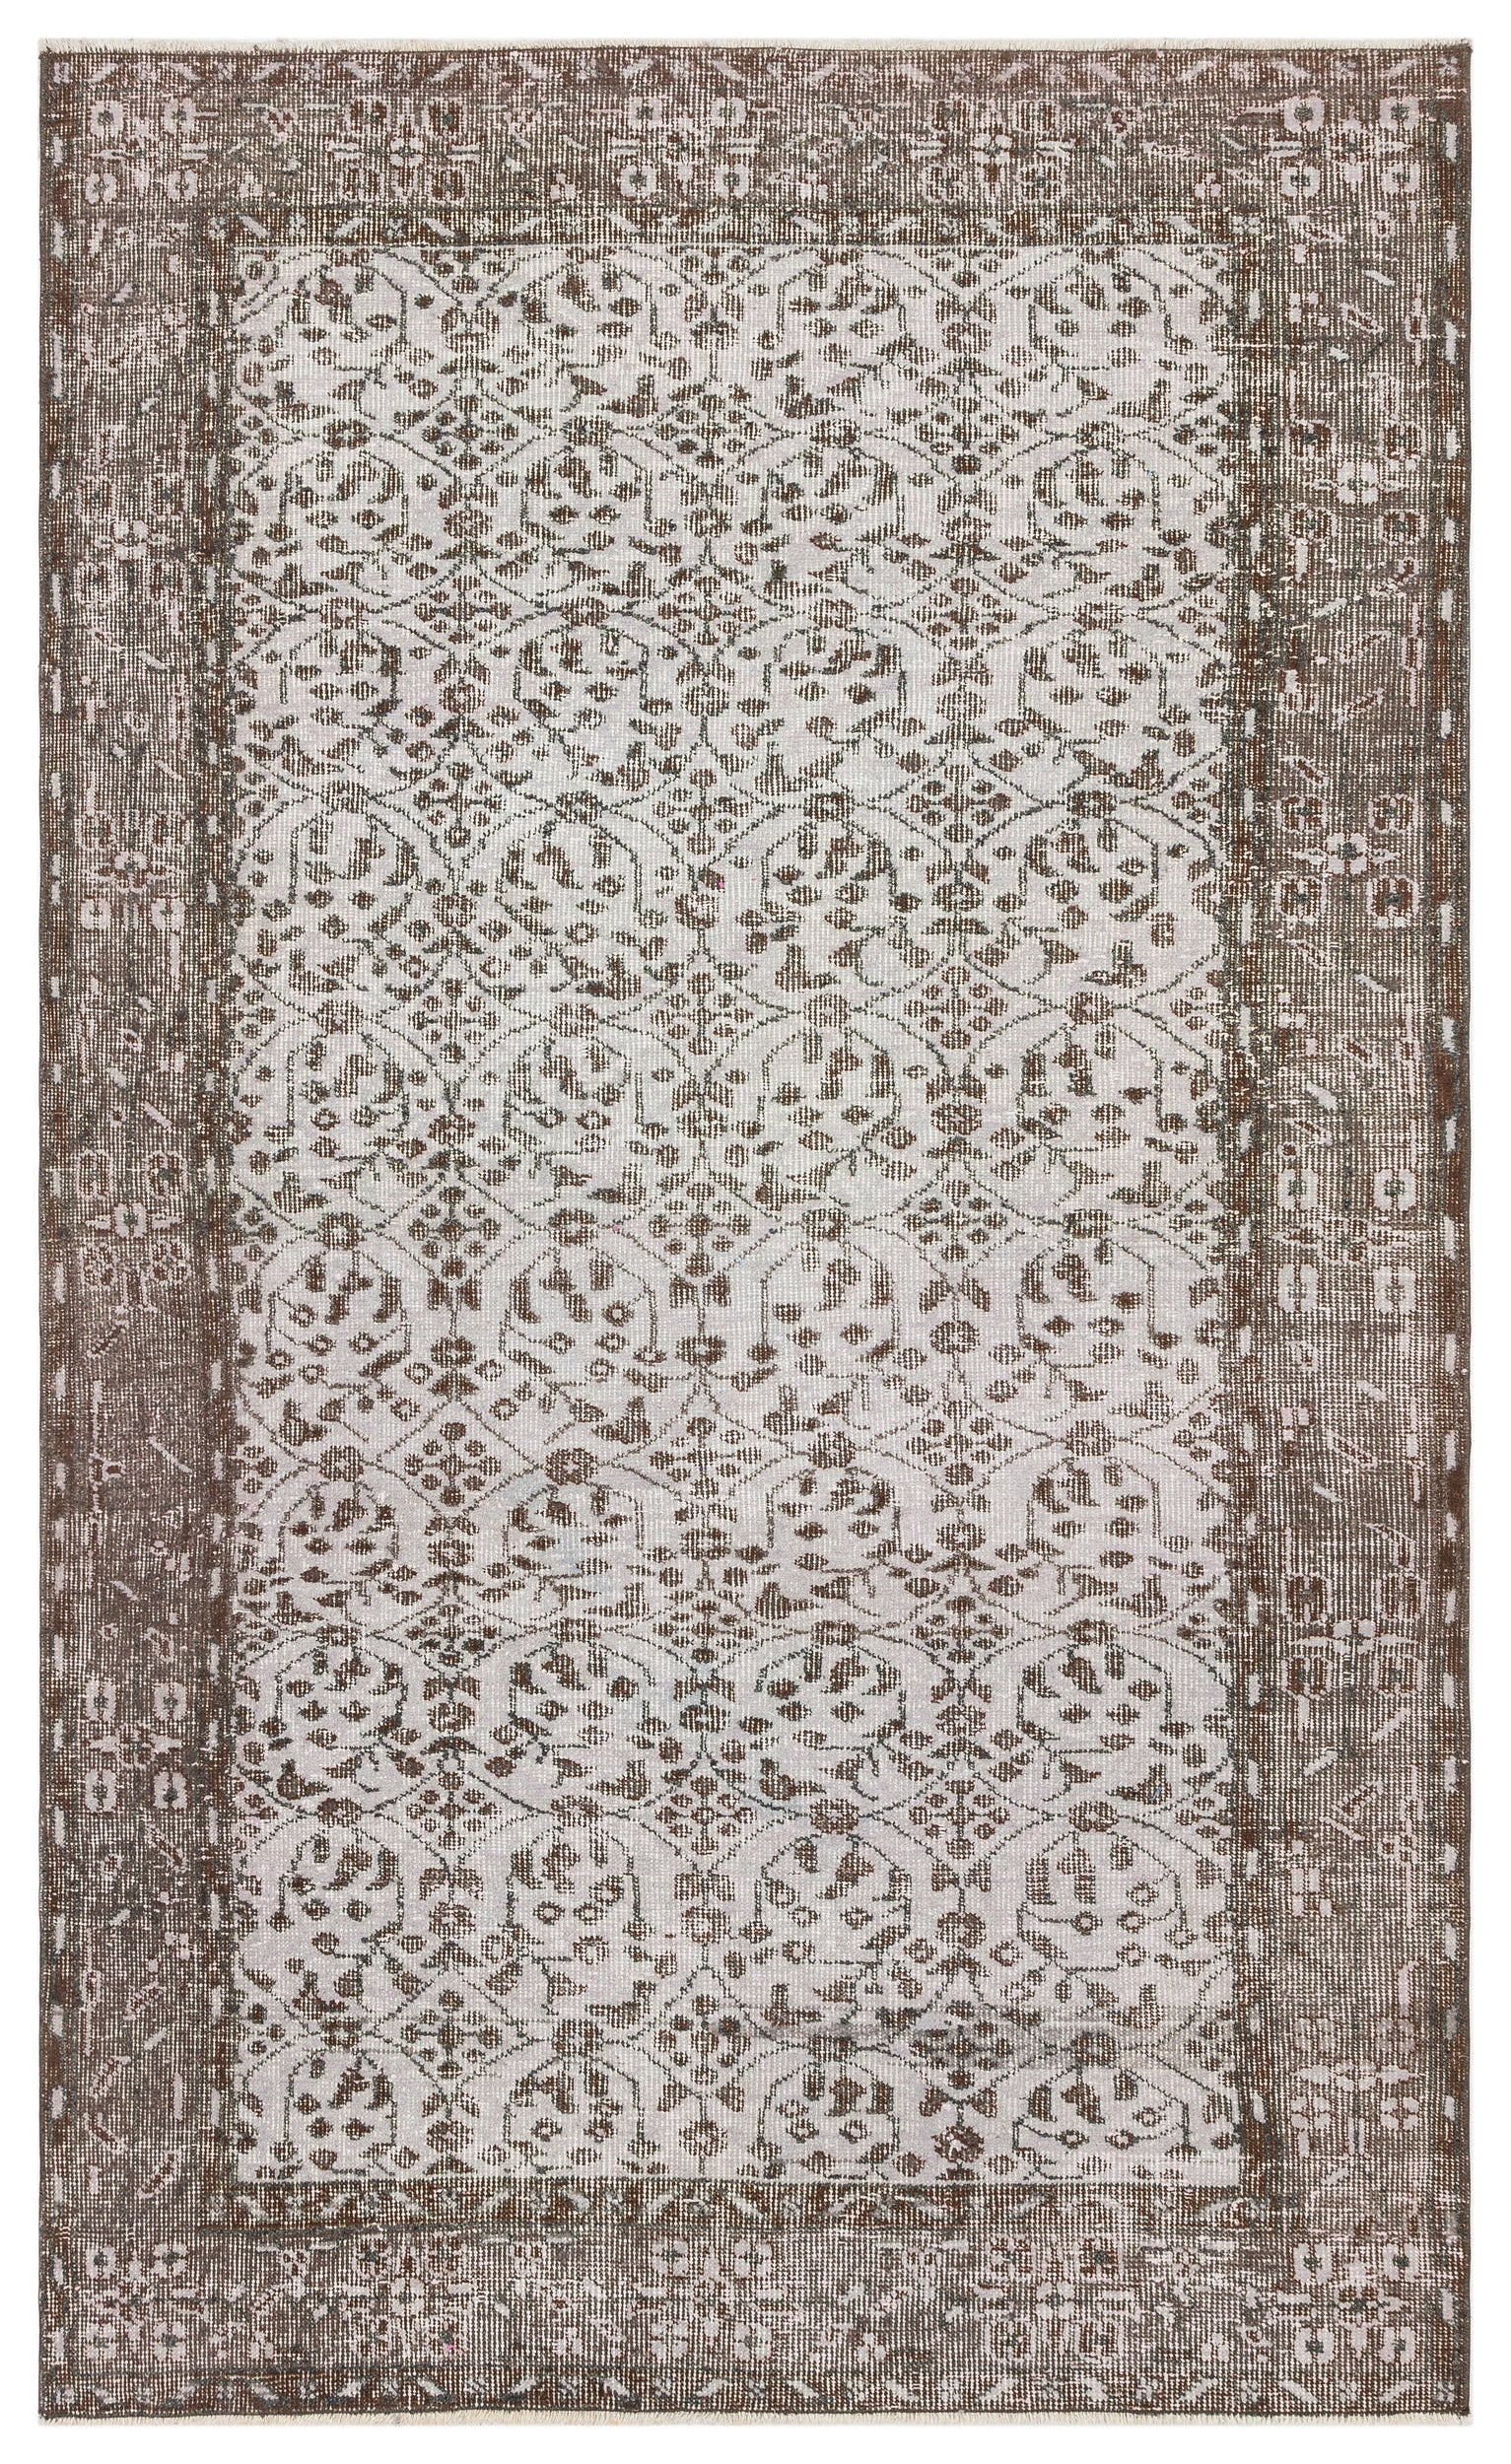 Gray Over Dyed Vintage Rug 4'4'' x 7'2'' ft 133 x 219 cm